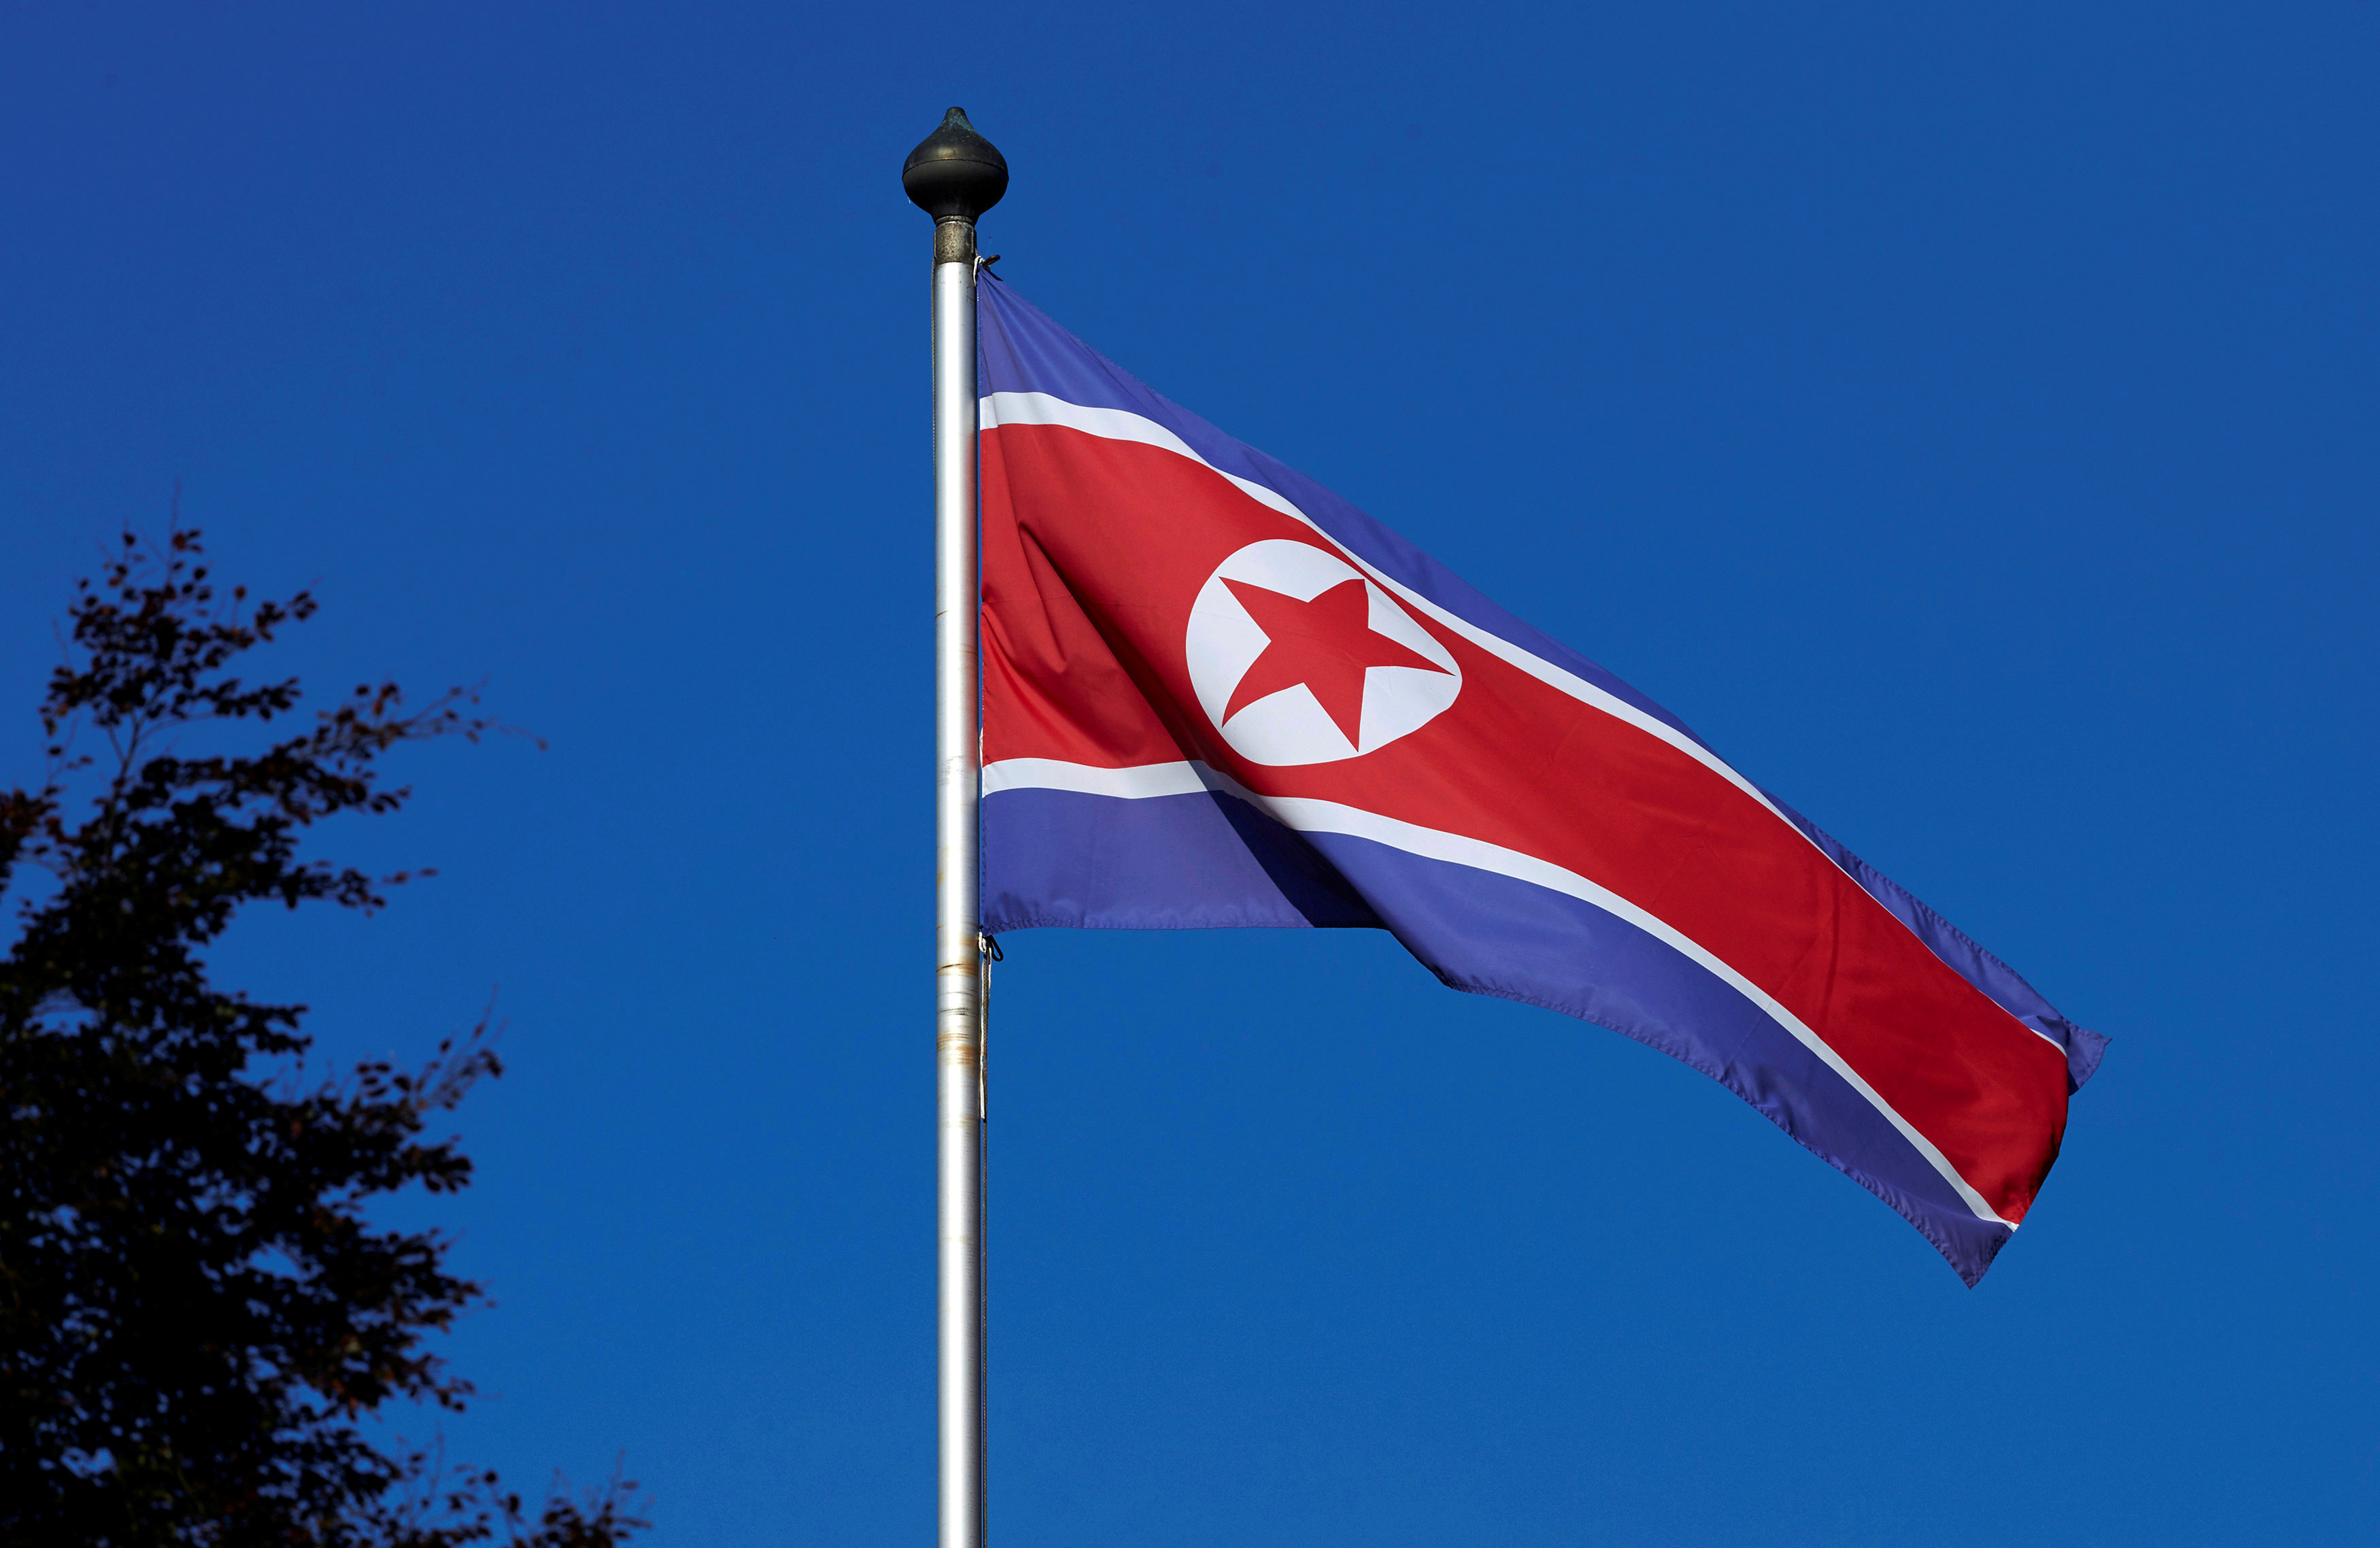 A North Korean flag flies on a mast at the Permanent Mission of North Korea in Geneva October 2, 2014.